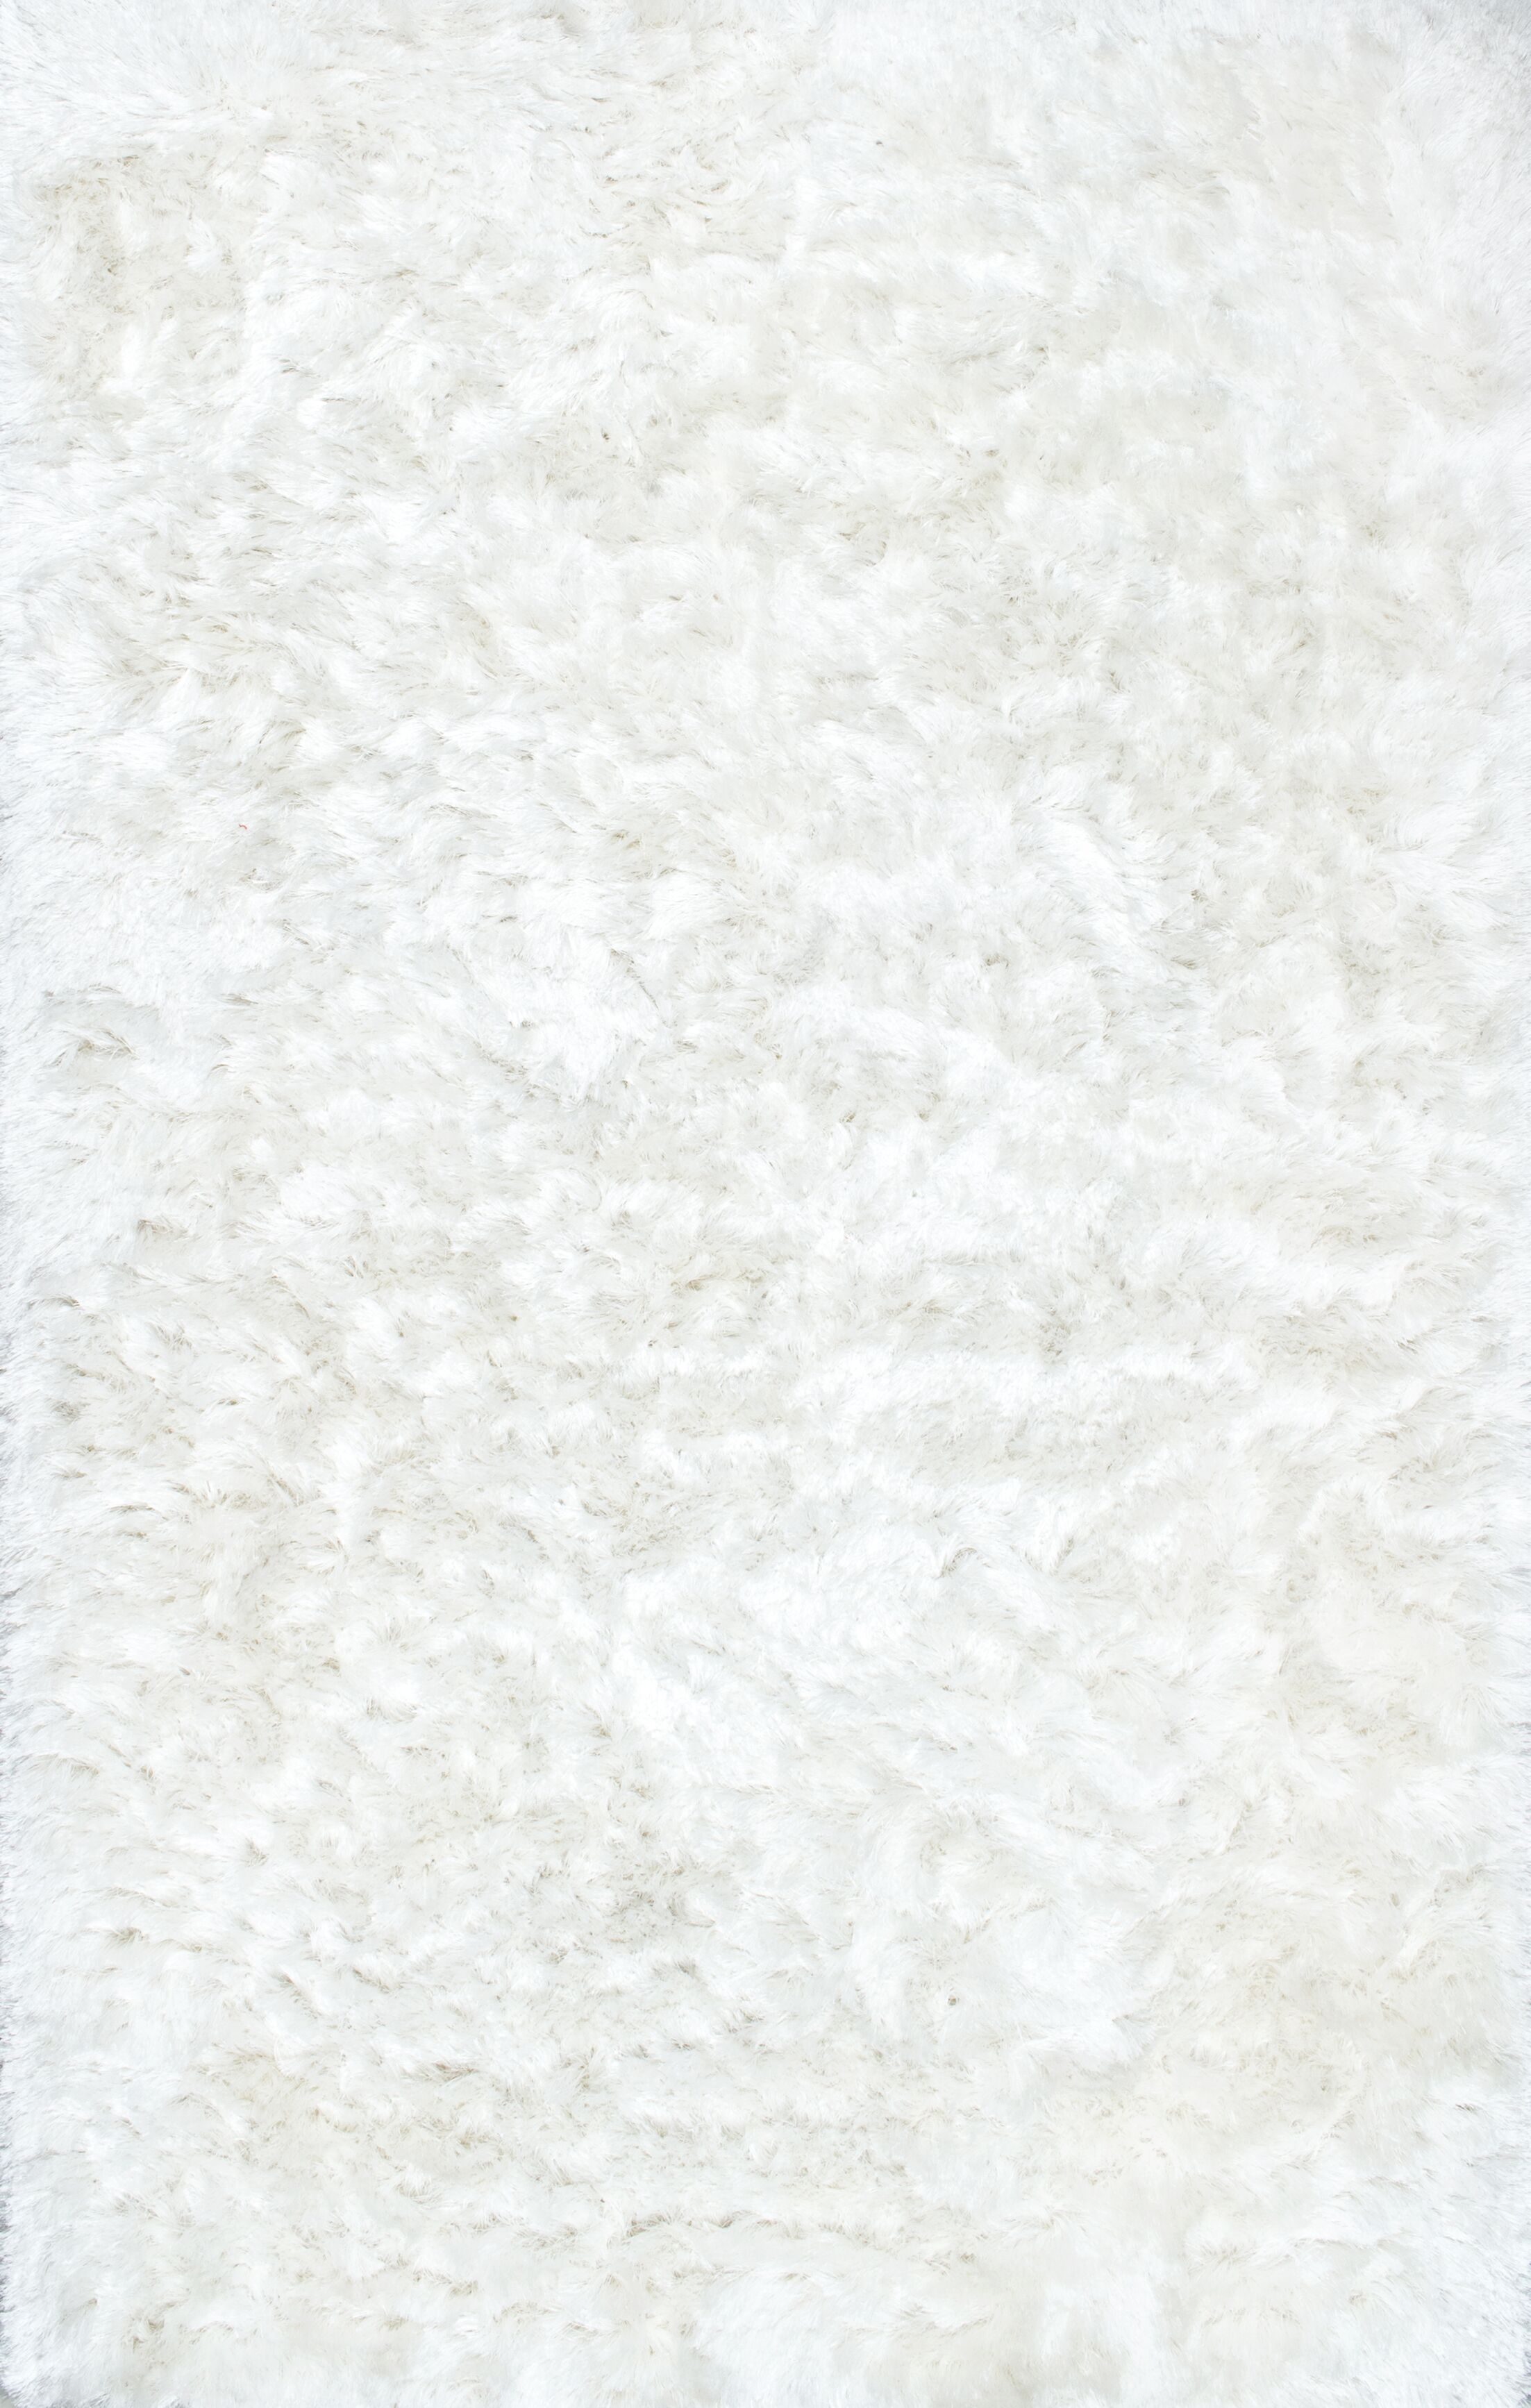 Sisyphus Hand-Woven White Area Rug Rug Size: Rectangle 5' x 8'